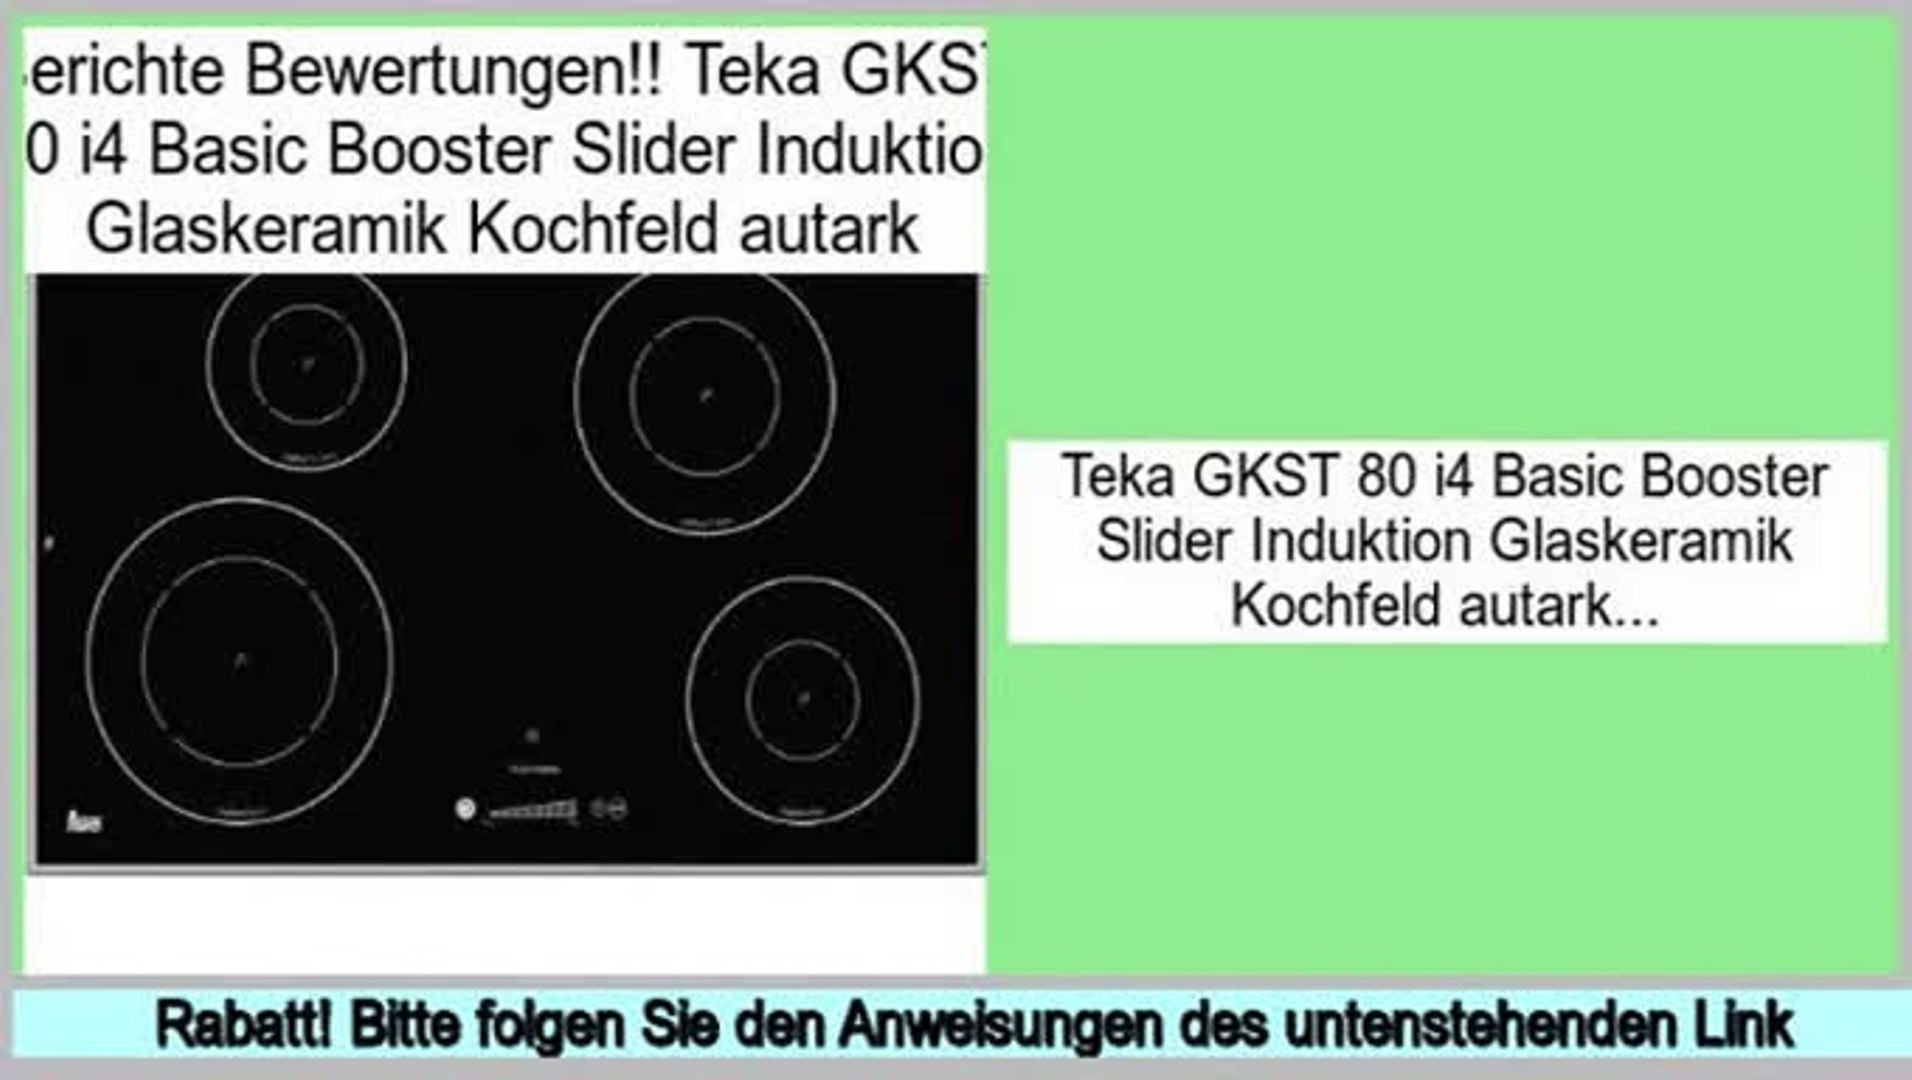 Kochfeld Induktion Autark Last Minute Teka Gkst 80 I4 Basic Booster Slider Induktion Glaskeramik Kochfeld Autark - Video Dailymotion